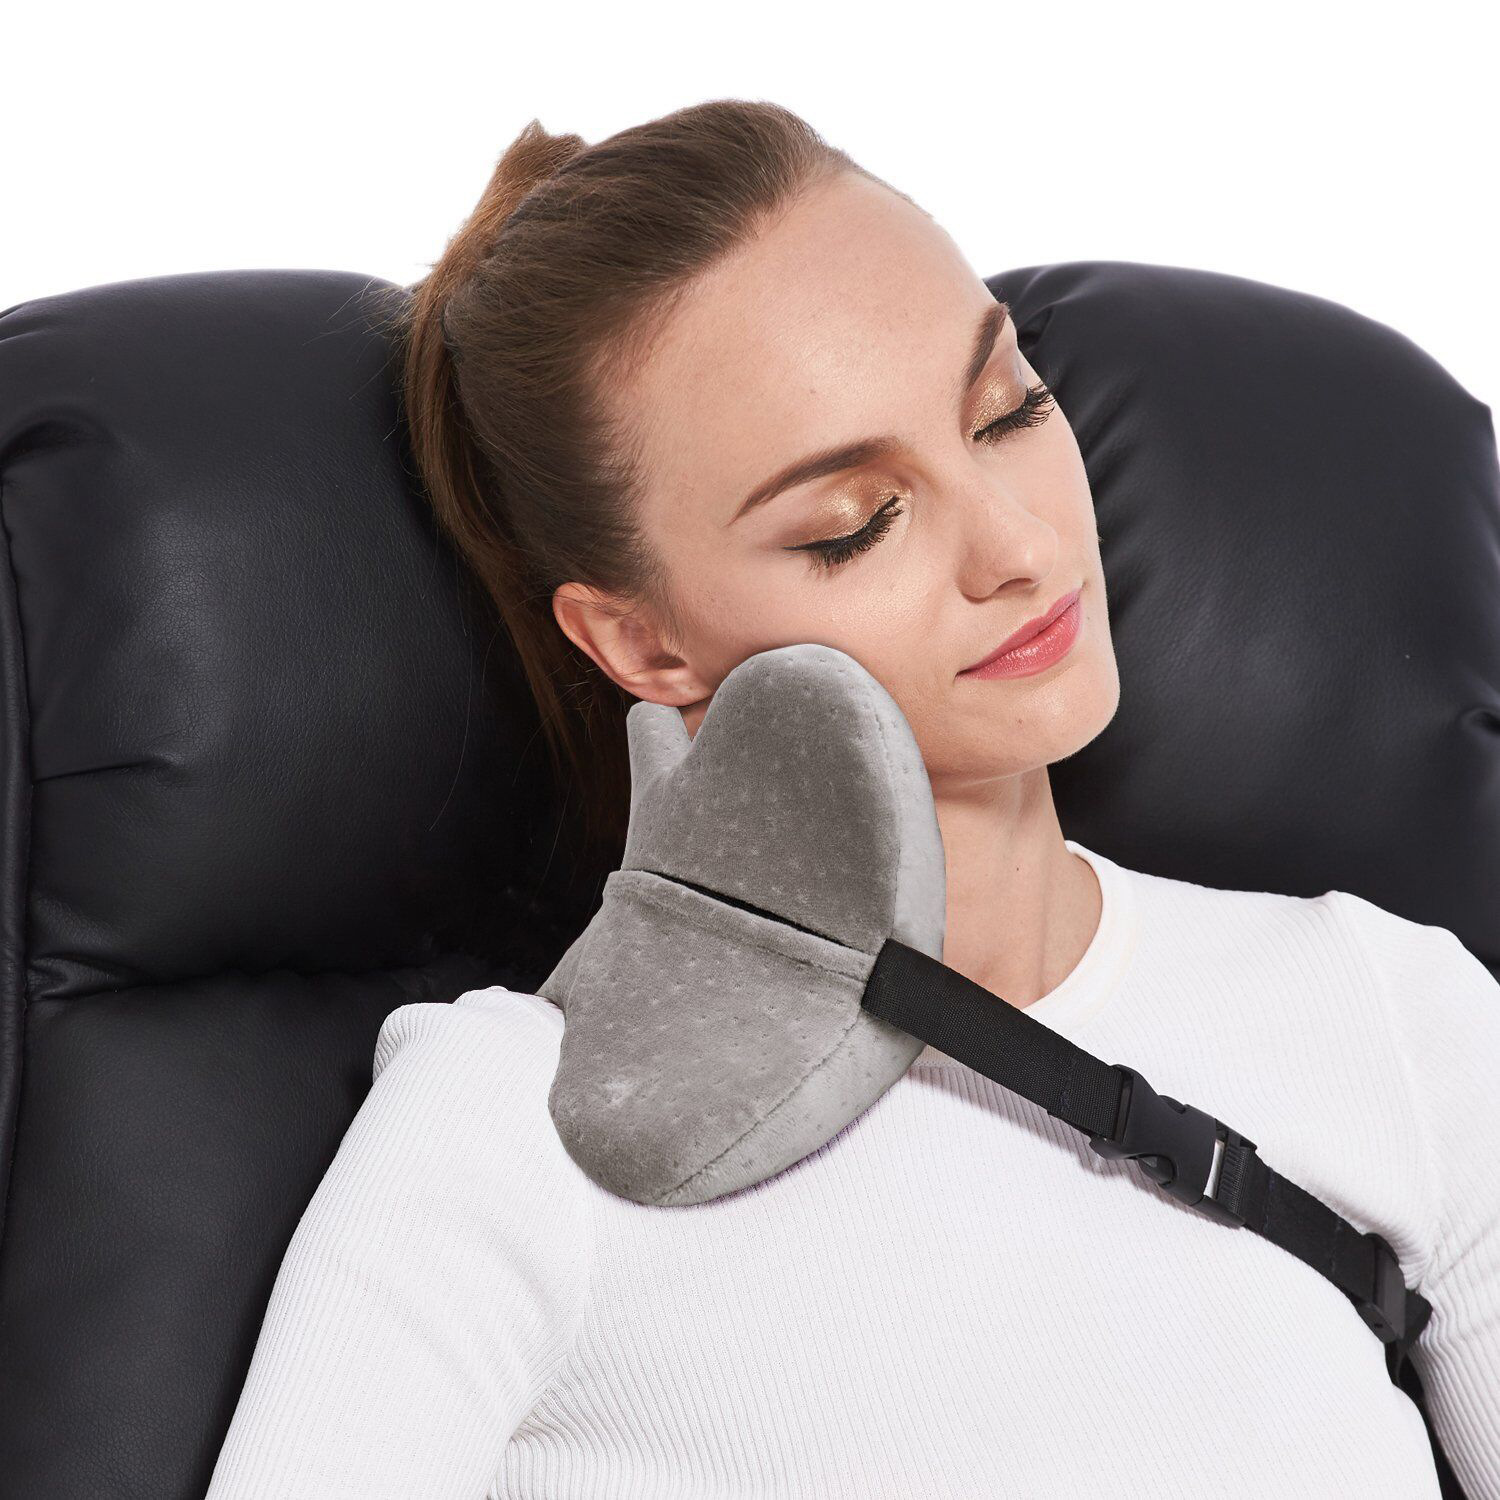 U-shaped Inflatable Aircraft Travel Inflatable Neck Pillow Memory Foam Solid Nostalgia Pillow